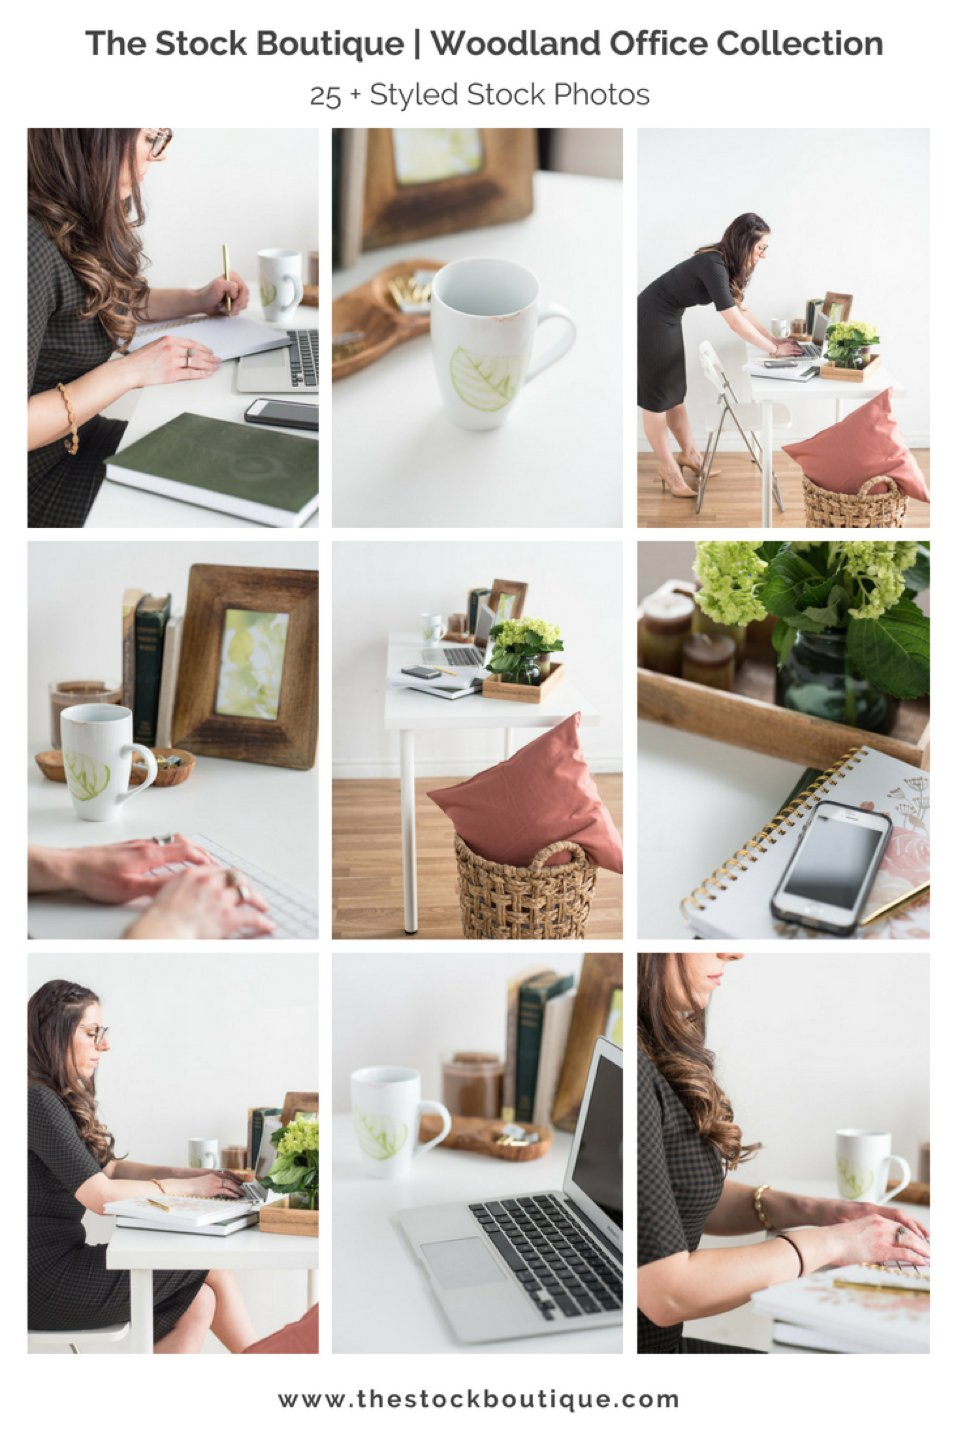 Woodland Office Fall Stock Photography Collection. We giveaway a free stock photo every month when you subscribe! www.thestockboutique.com    #fall     #stockphoto     #freestockphoto     #girlboss     #girlbossoffice     #officedesigninspiration    #stockphotography     #femaleentrepreneur